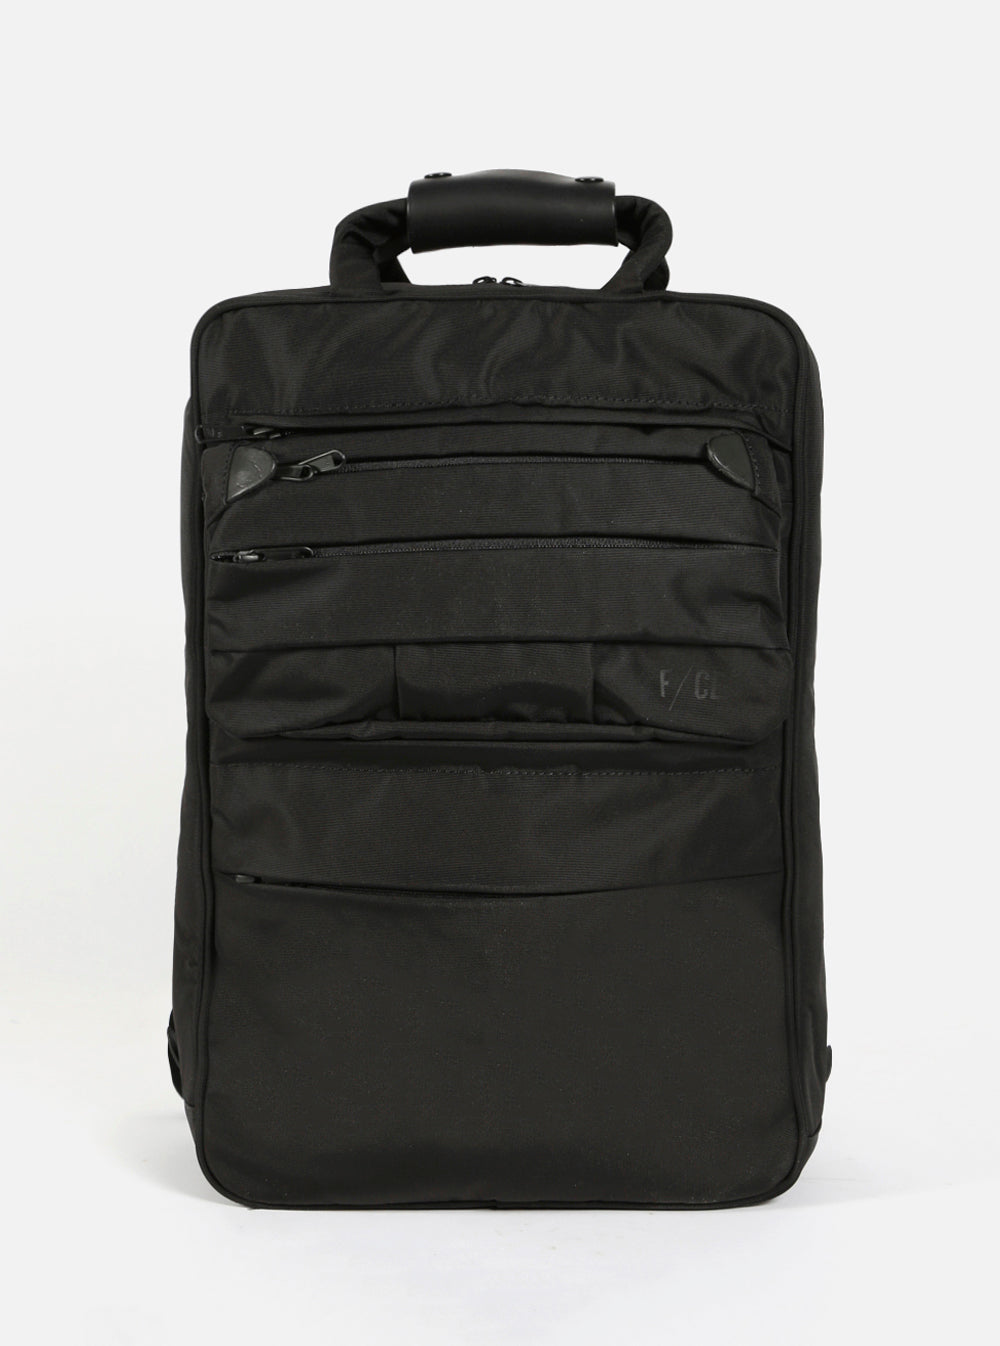 F/CE.® 630 Square BP in Black Cordura